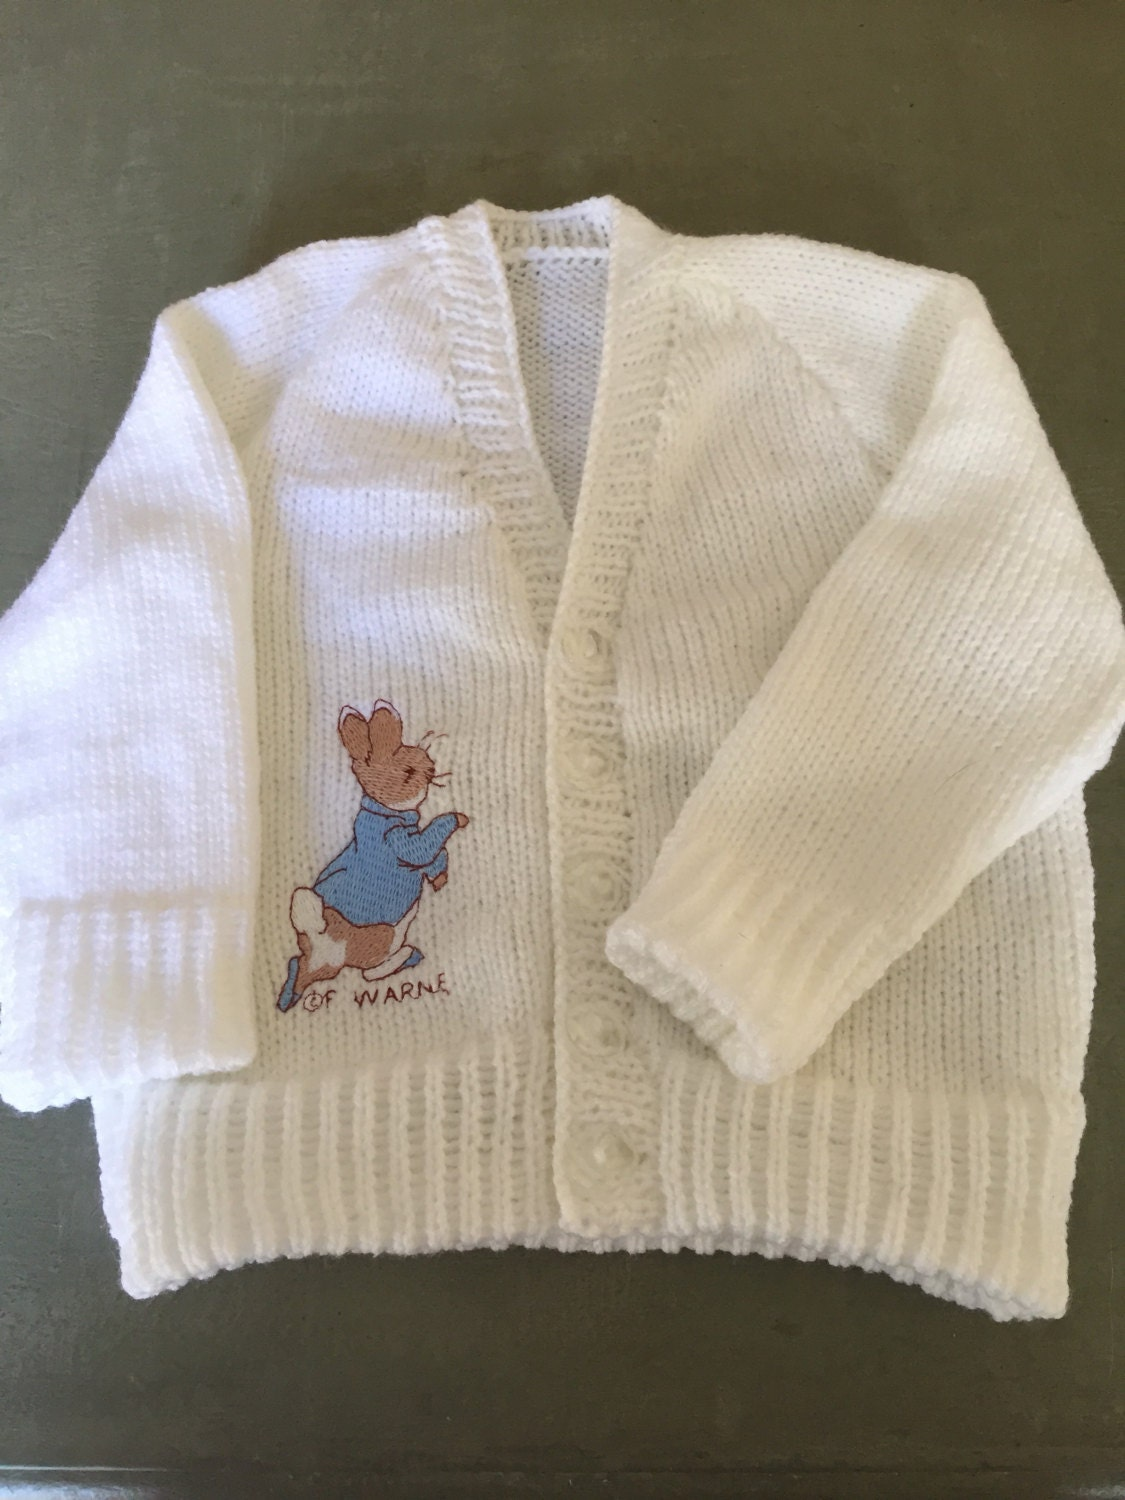 Create Your Own Sweater